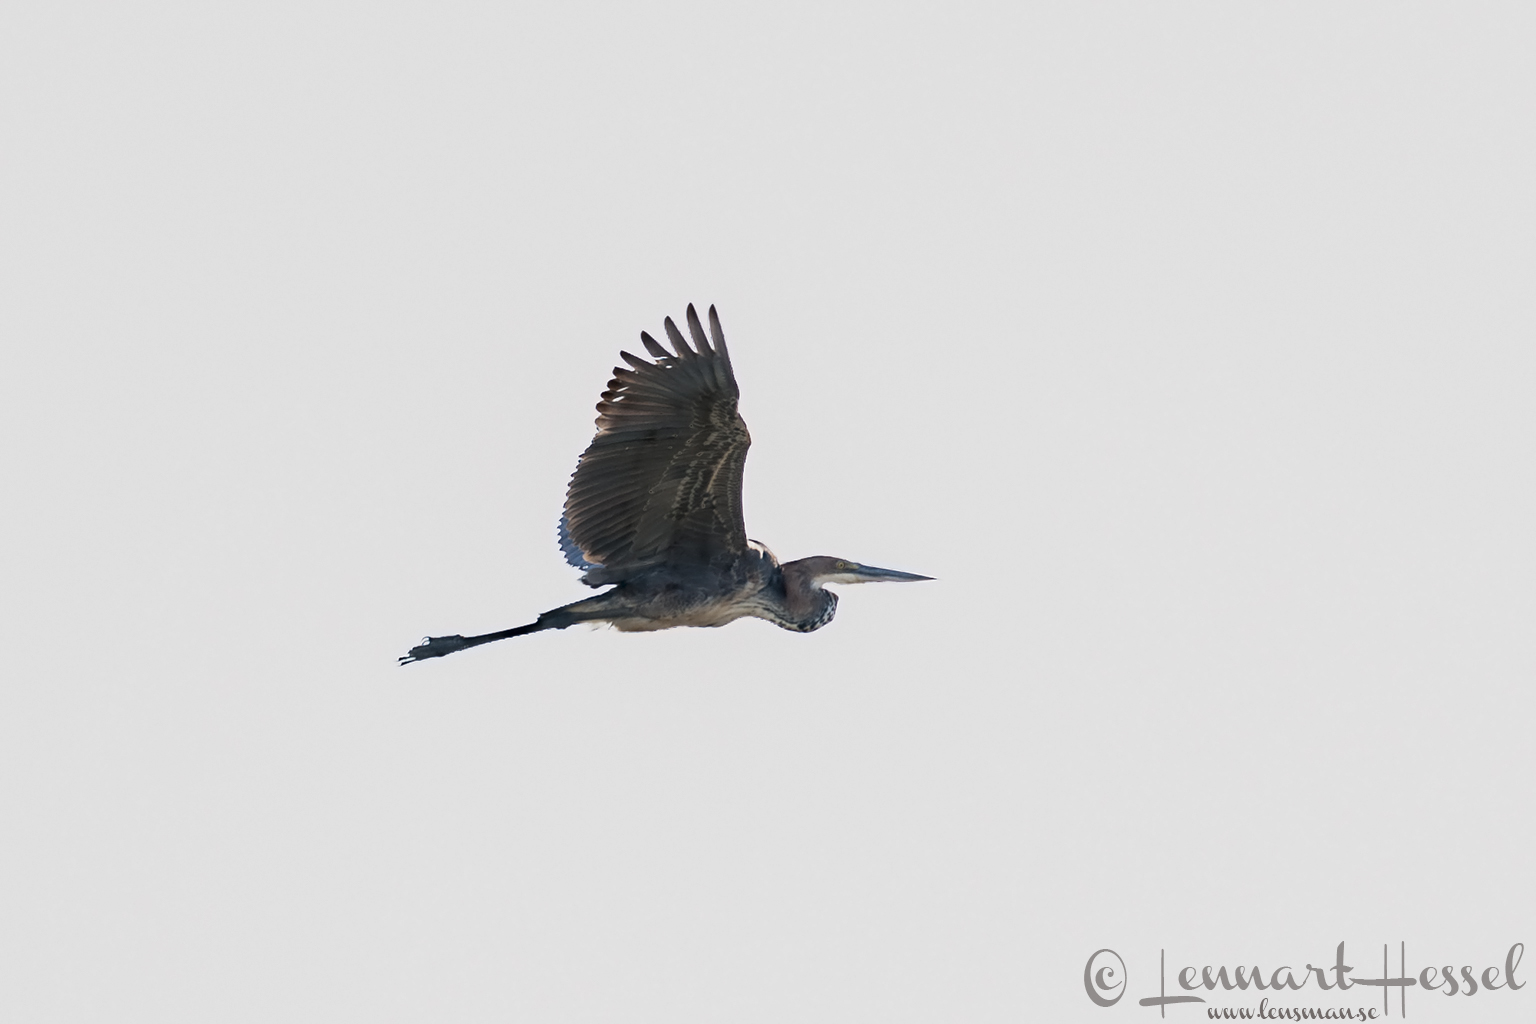 Purple Heron in Moremi Game Reserve, Botswana